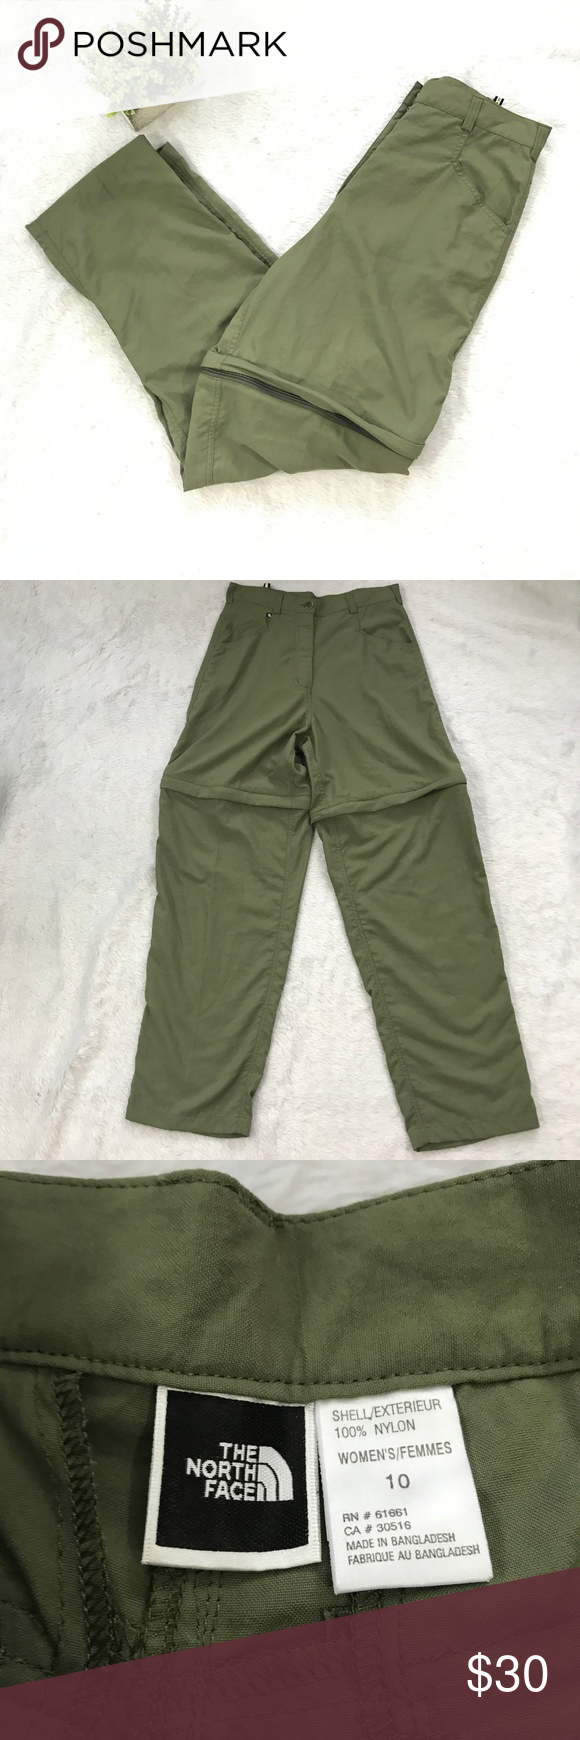 f01368c193 North Face Green Zip Away Hiking Pants Brand: The North Face Size: 10 There  are no flaws. Please see photos for measurements. The North Face Pants Track  ...